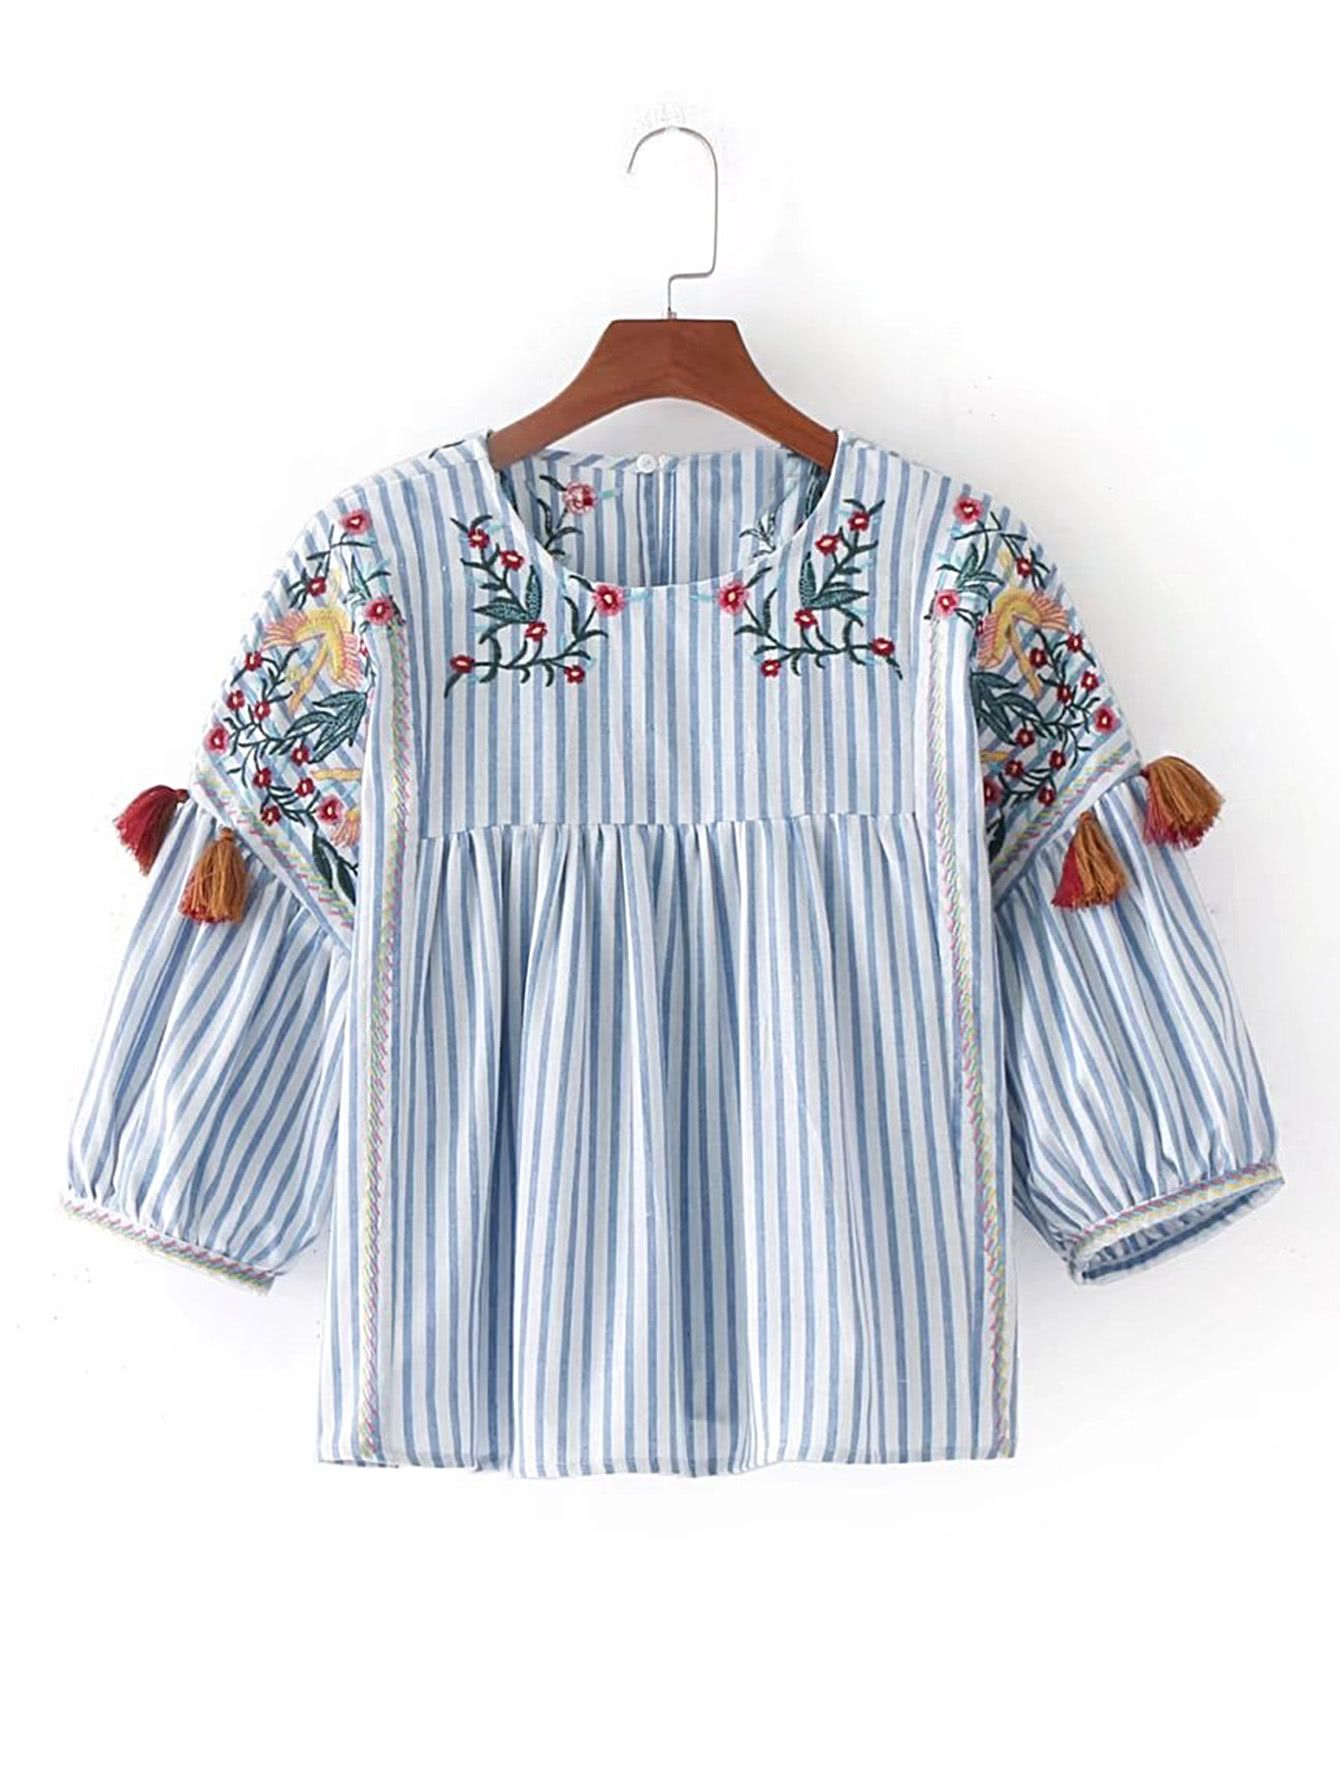 2e1f4d588b Shop Vertical Striped Flower Embroidery Top With Fringe online. SheIn  offers Vertical Striped Flower Embroidery Top With Fringe & more to fit  your ...